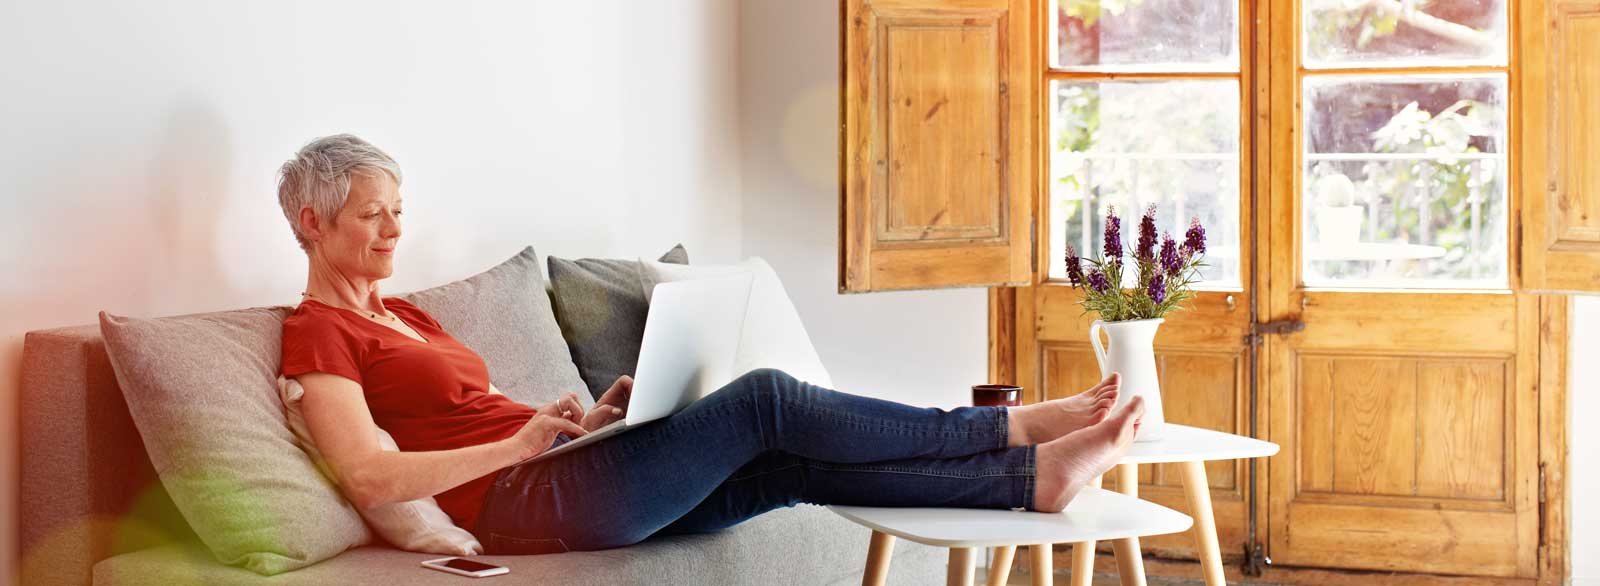 Woman uses laptop while relaxing on couch